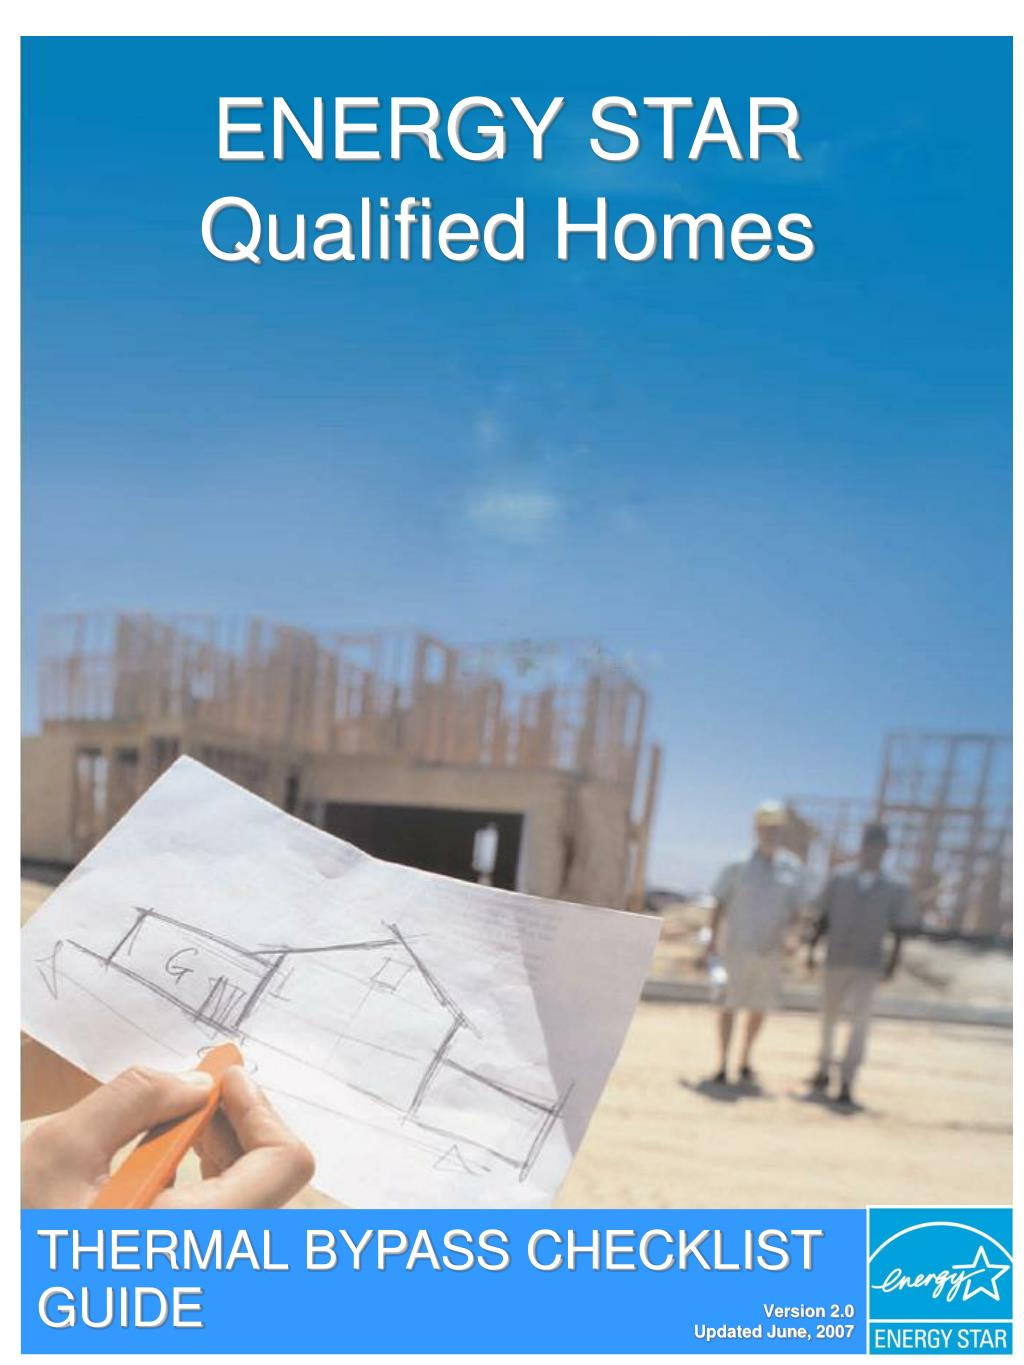 ENERGY STAR Qualified Homes